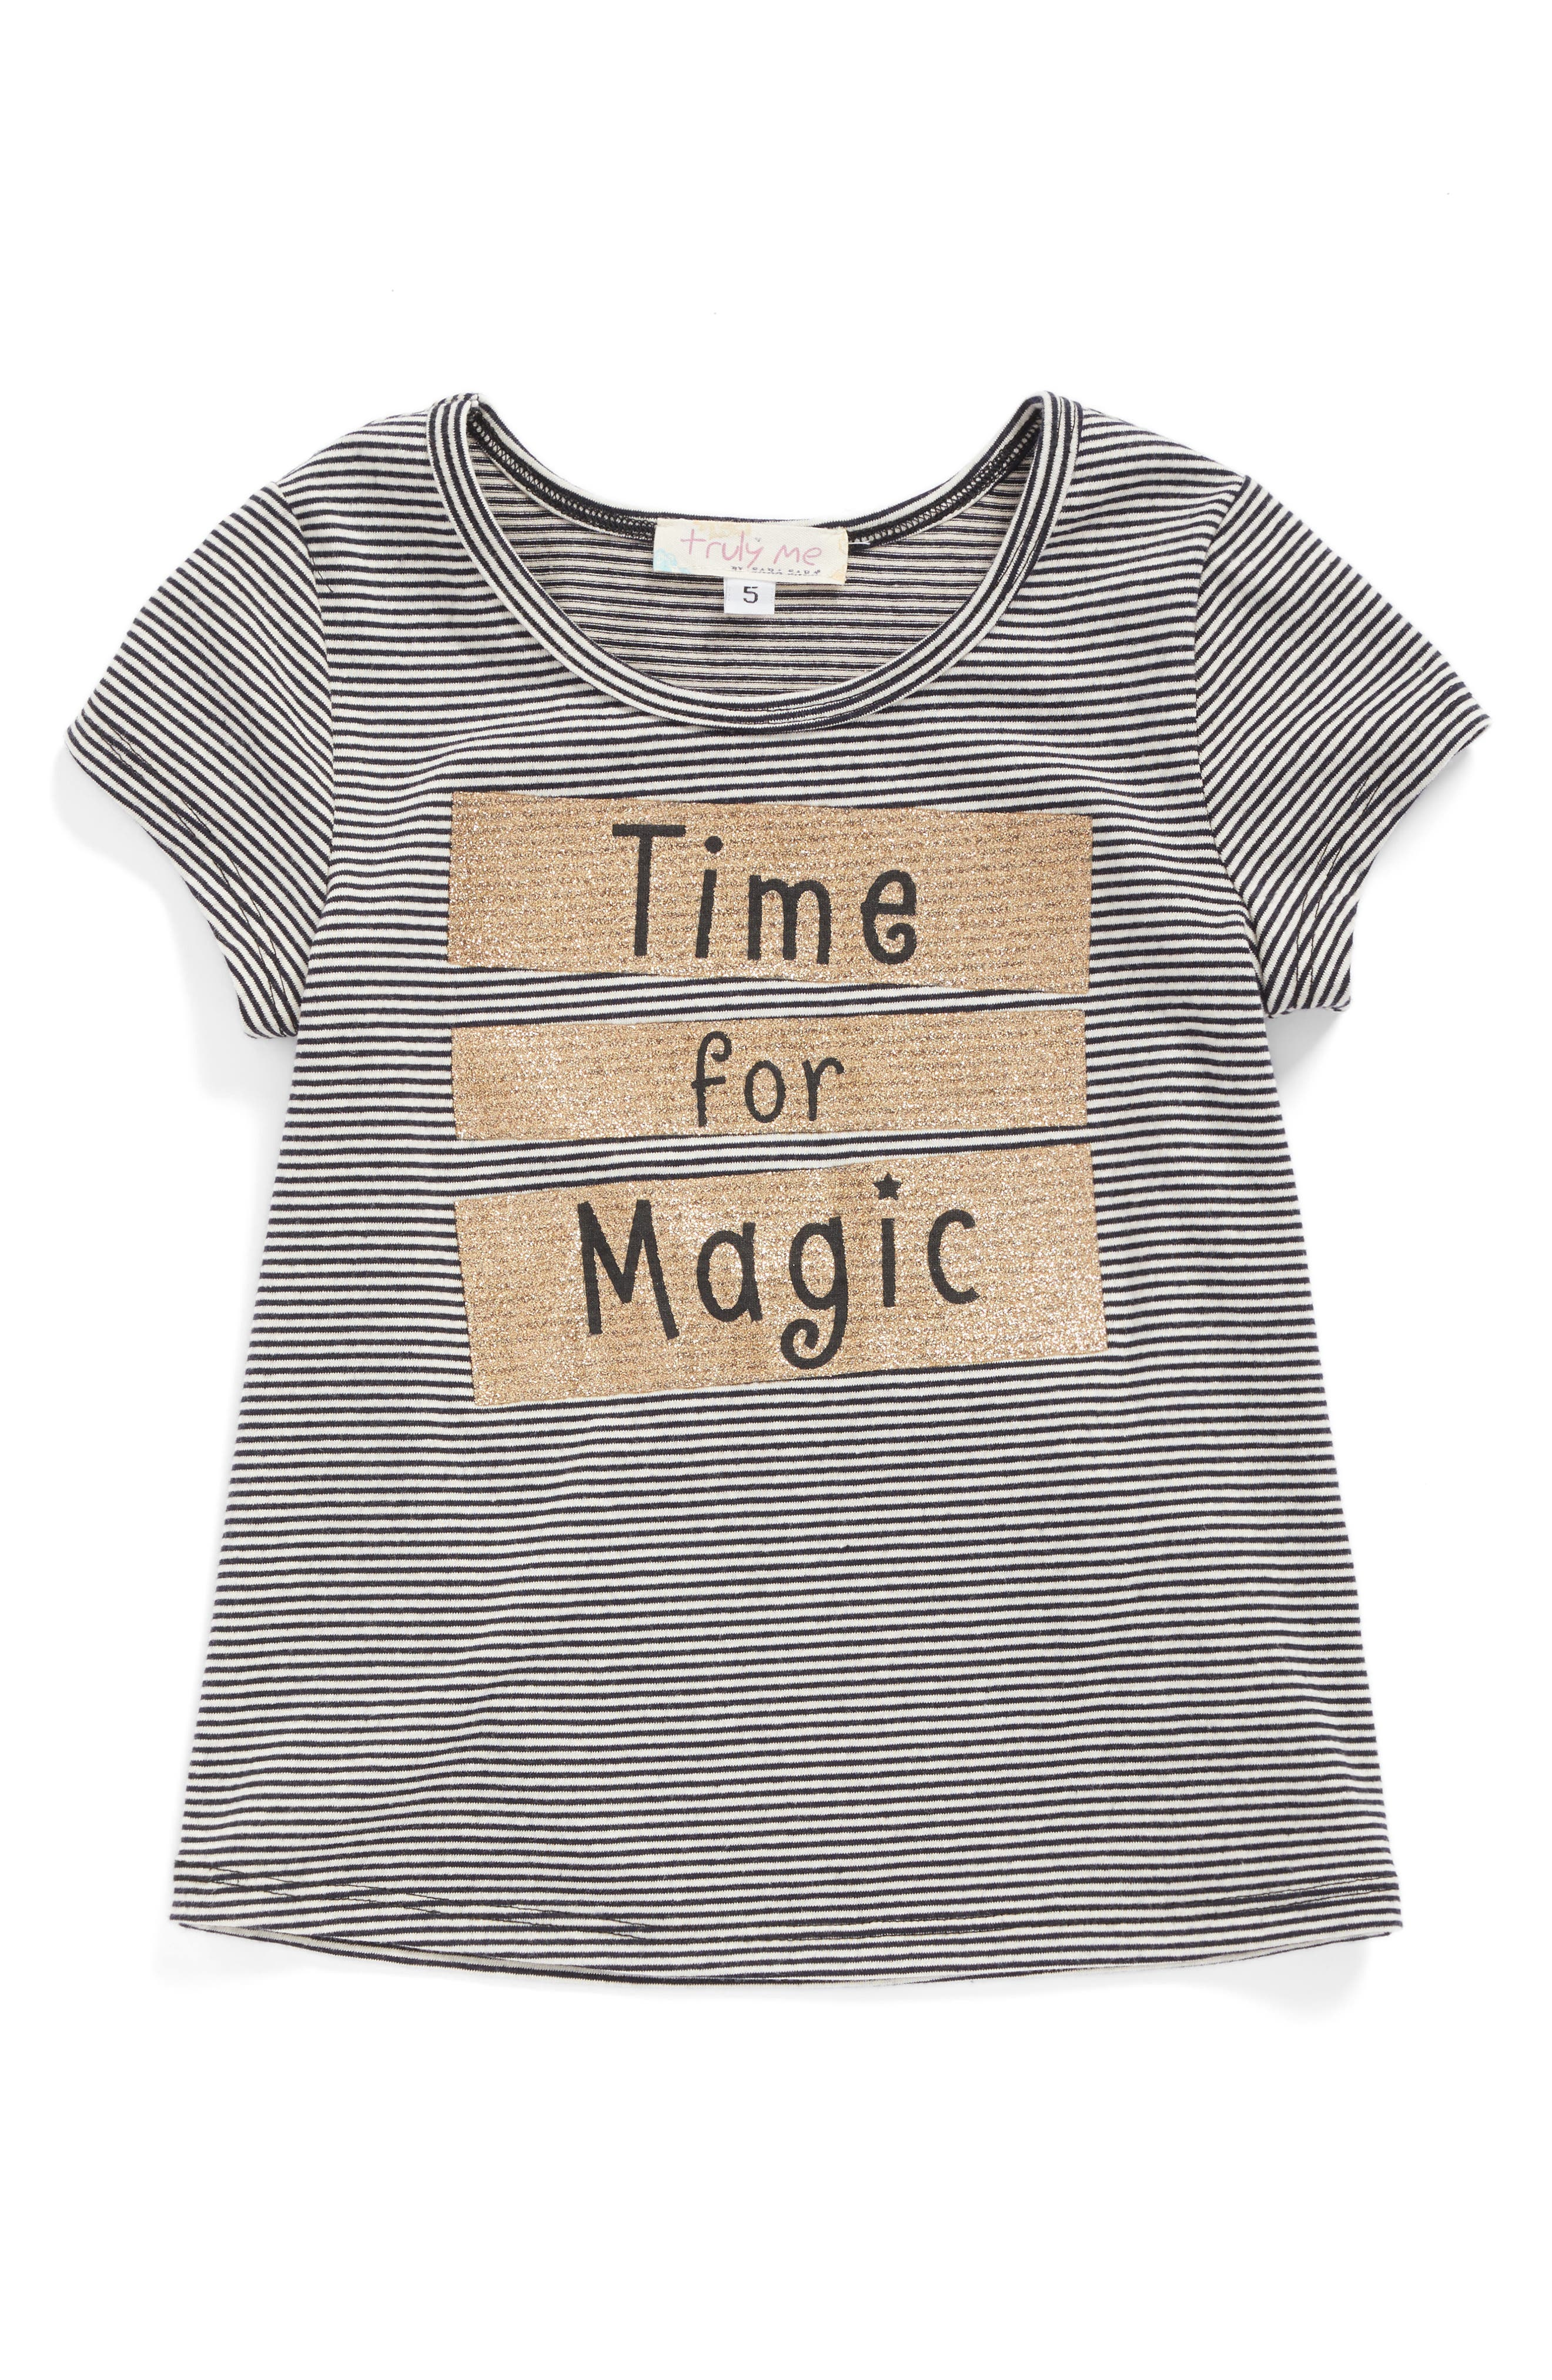 Alternate Image 1 Selected - Truly Me Time For Magic Stripe Tee (Baby Girls)